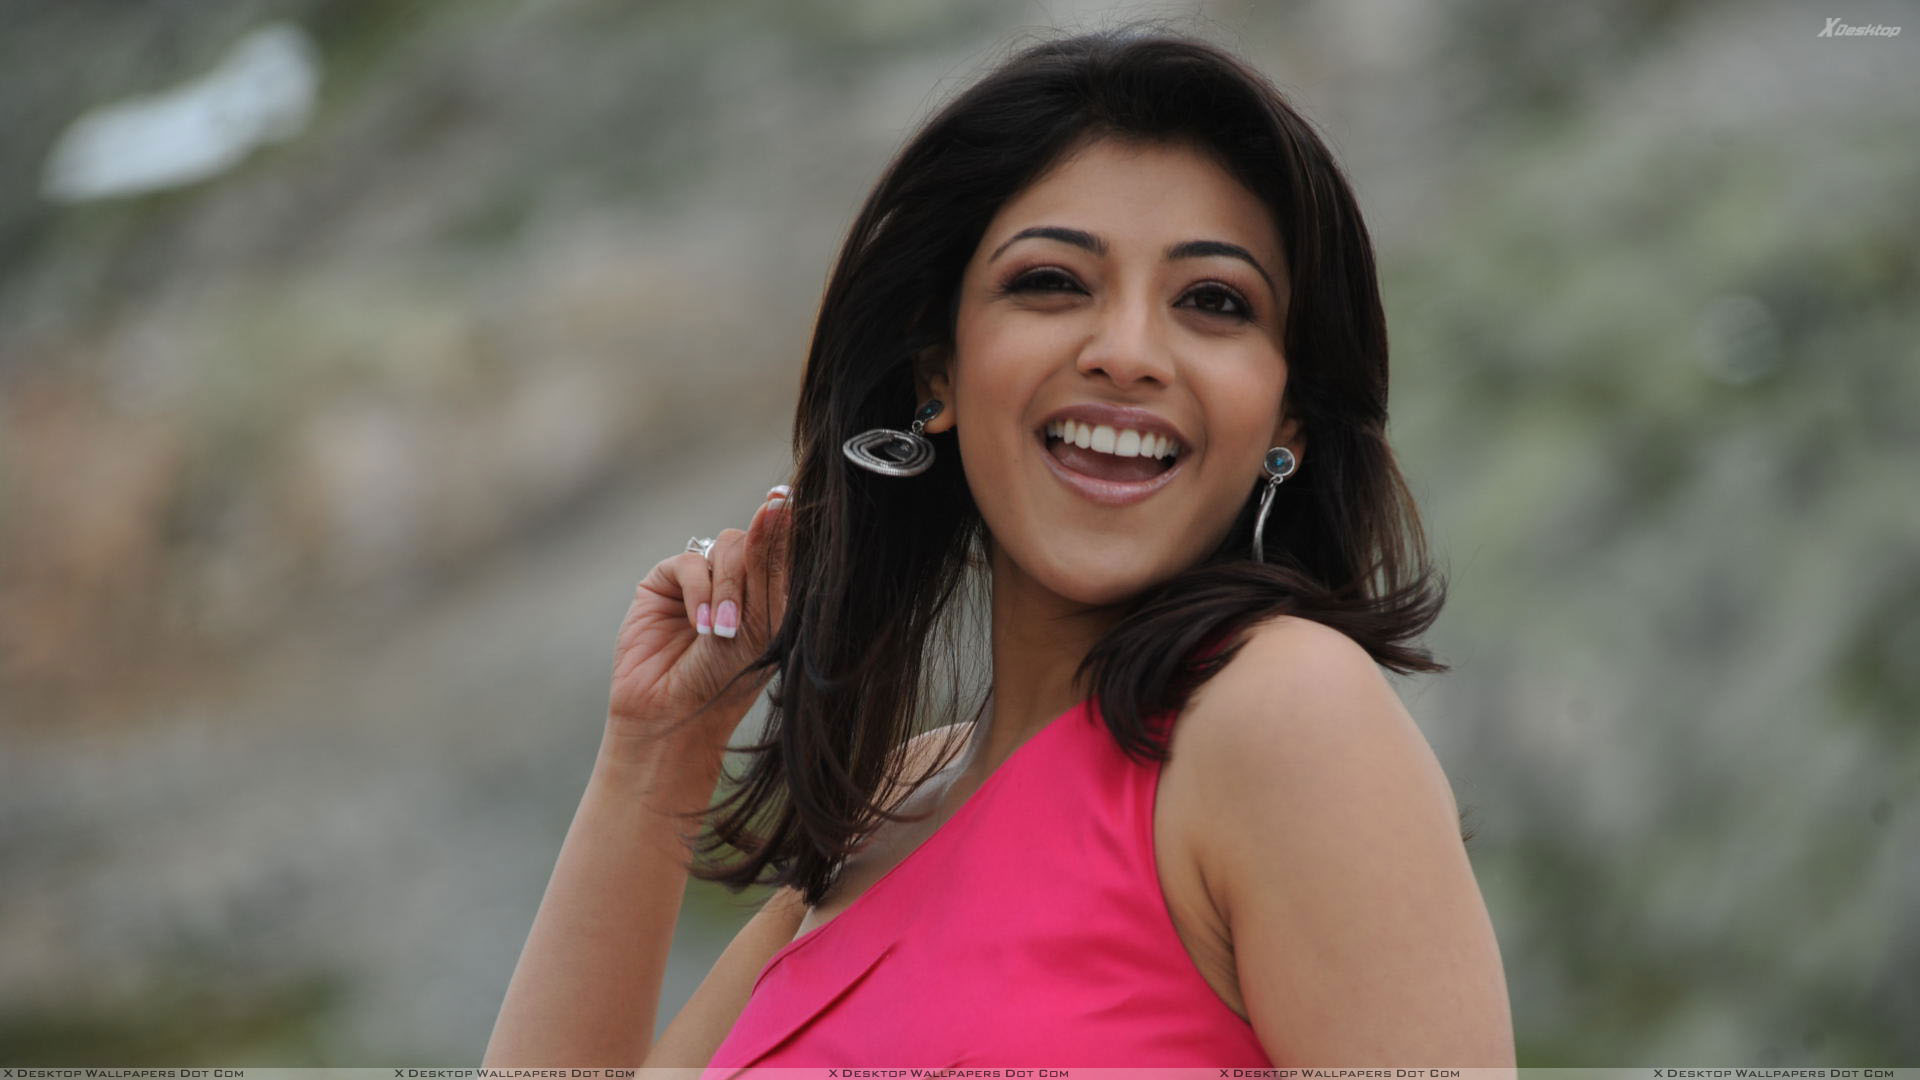 kajal aggarwal laughing naughty pose in pink dress wallpaper